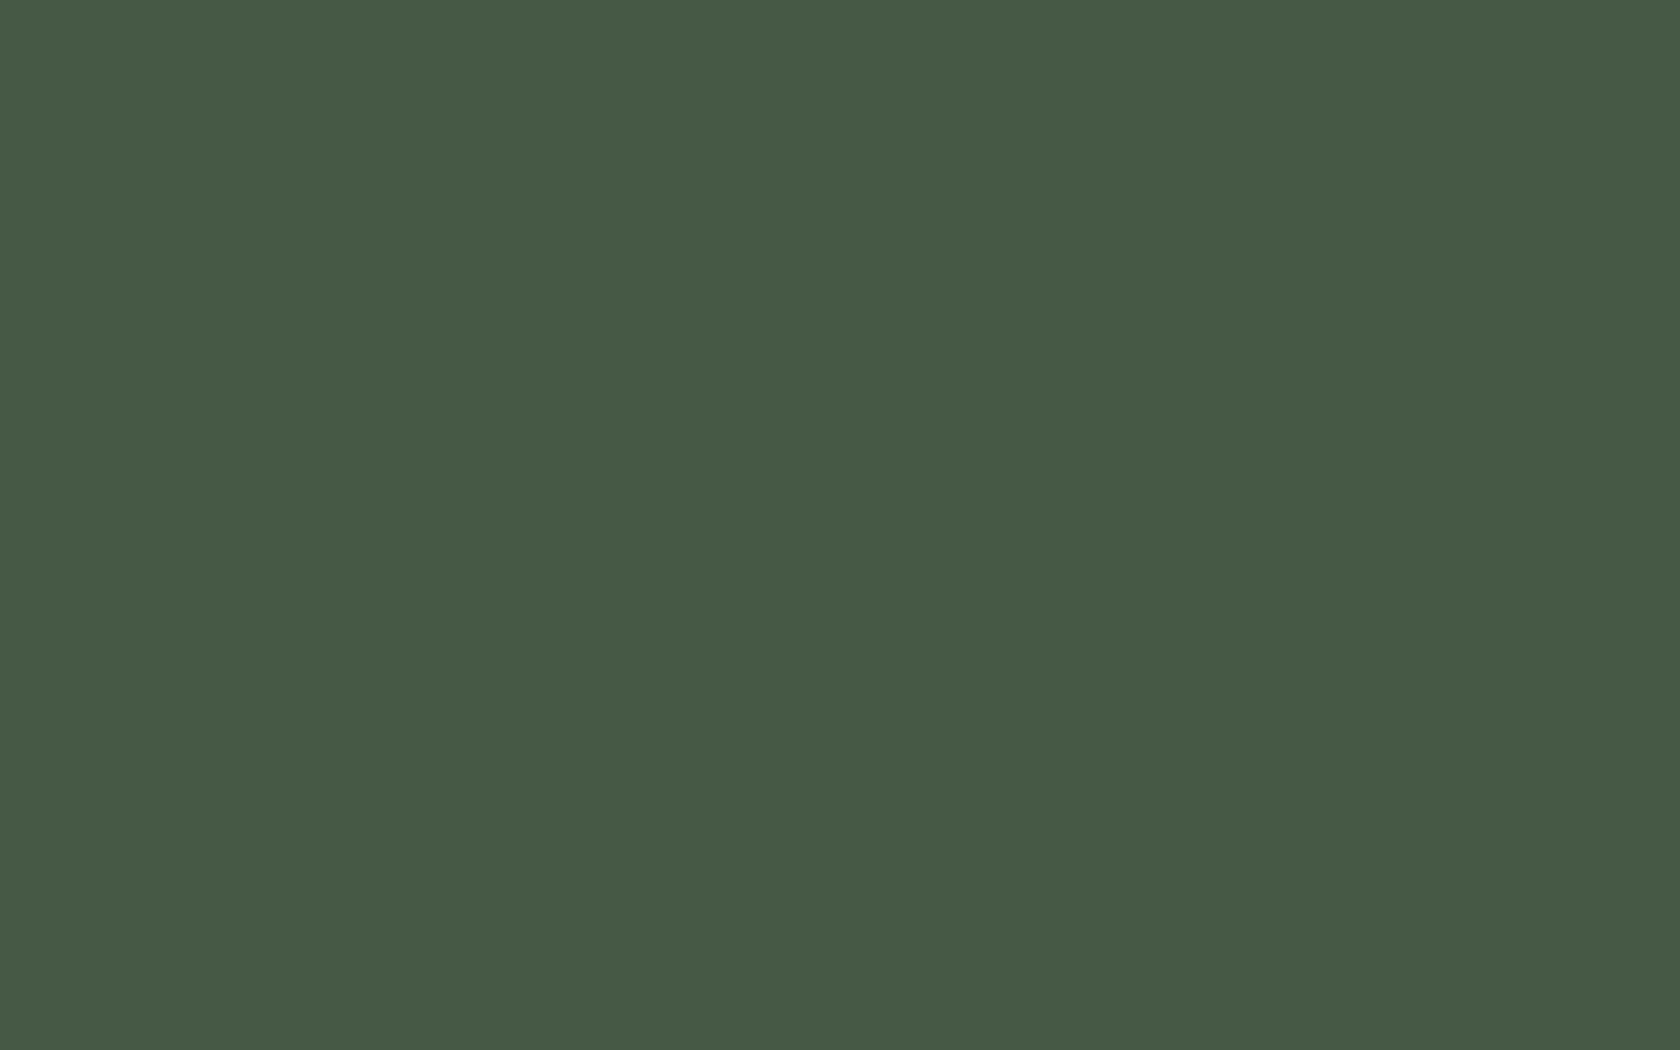 1680x1050 Gray-asparagus Solid Color Background